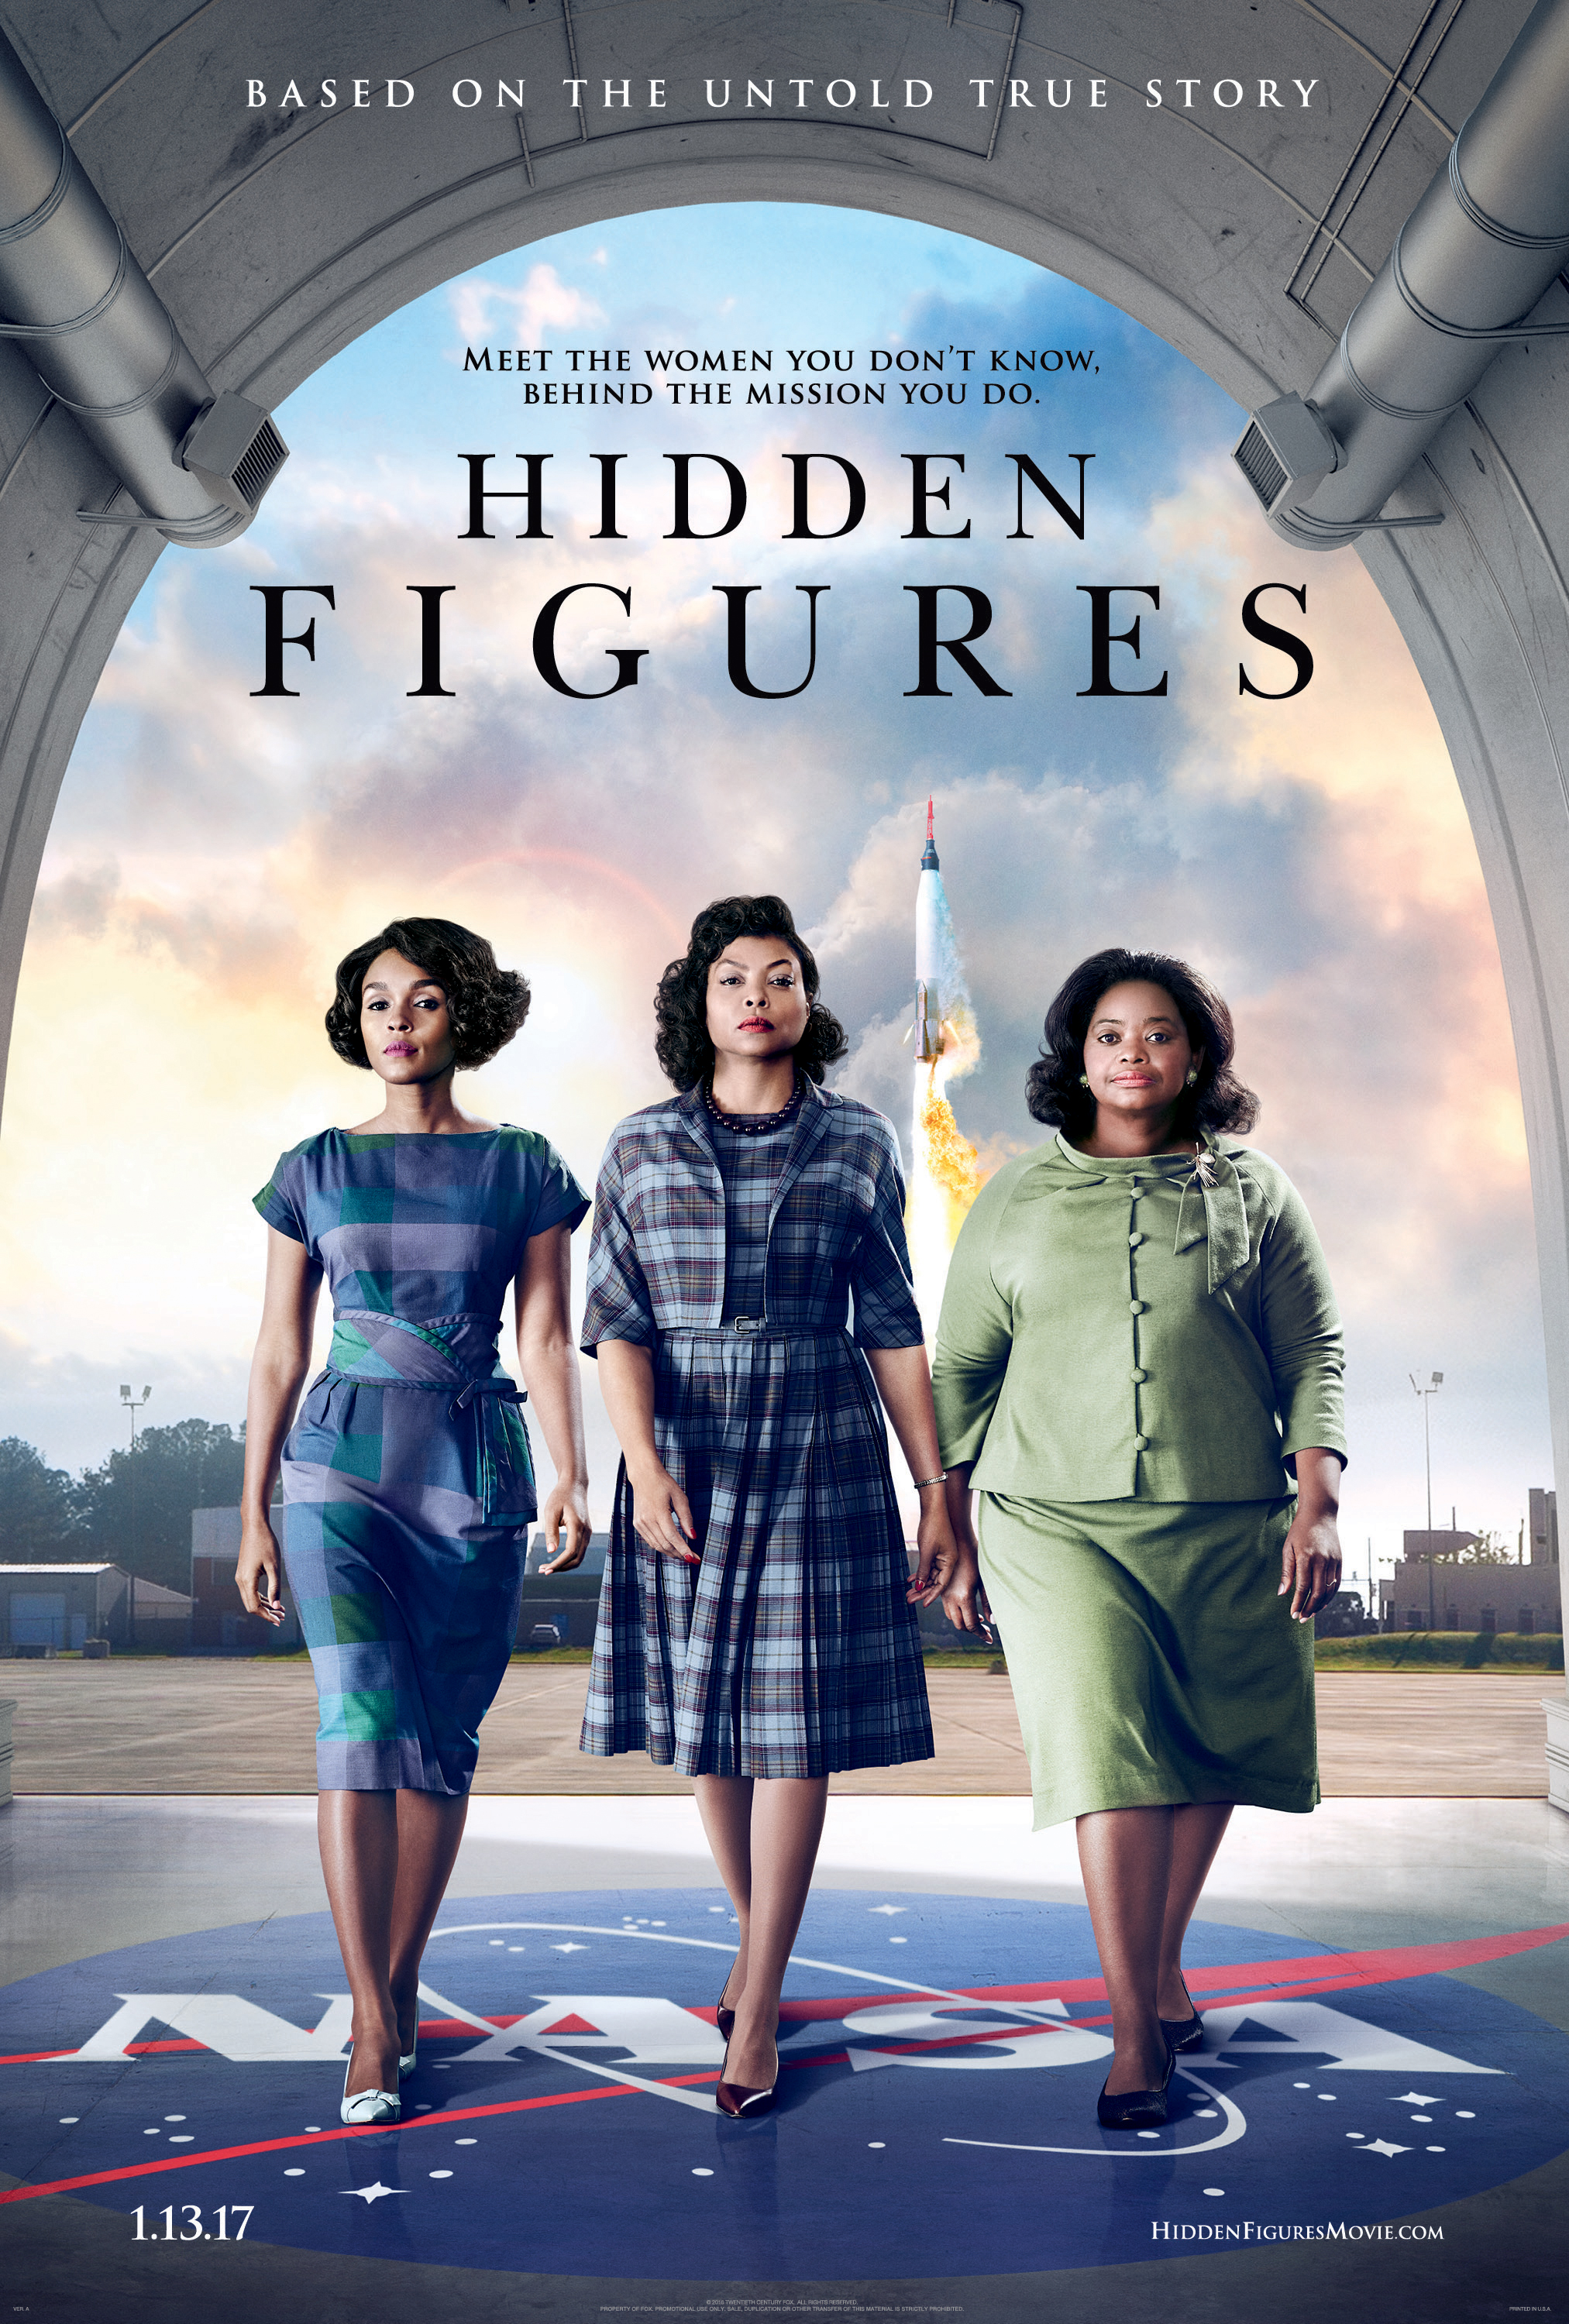 https://i2.wp.com/www.blackfilm.com/read/wp-content/uploads/2016/08/Hidden-Figures-poster.jpg